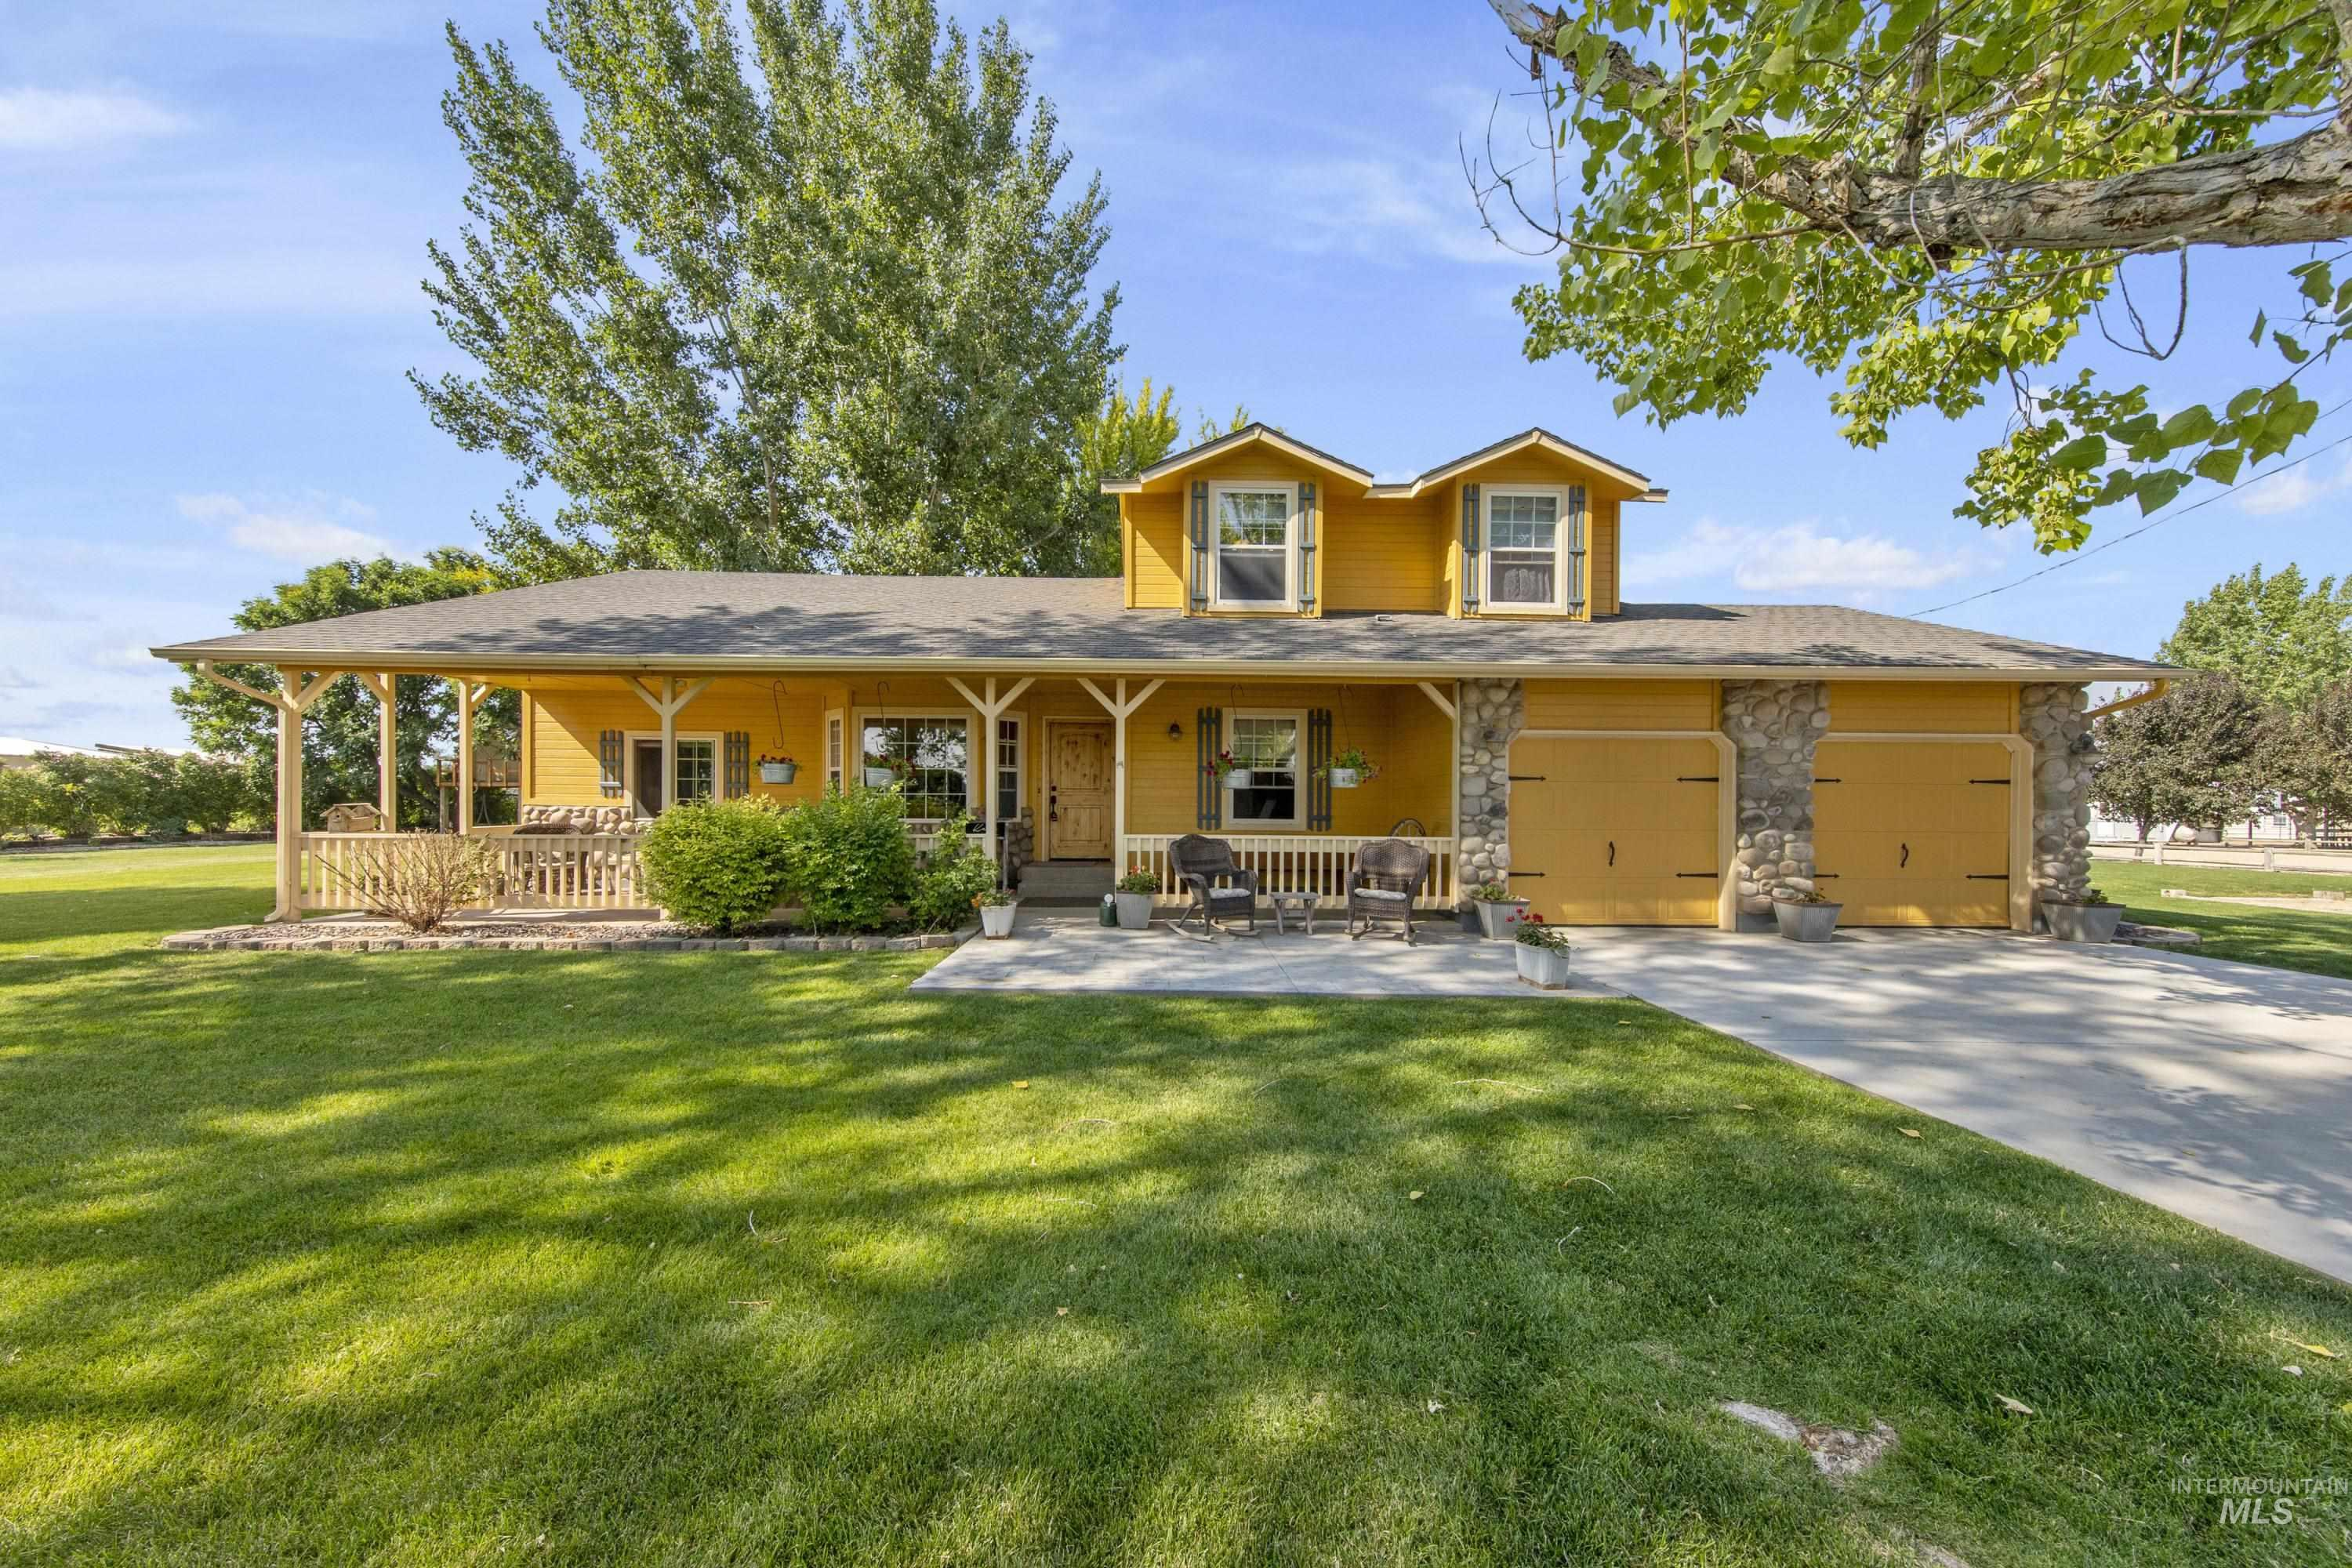 This 2183 ft updated home is situated on 10.3 irrigated acres on quiet dead end road with access to trail riding on public lands a 1/4 mile ride from the barns. 4bd, 2 1/2bth, open living room, open kitchen with beautiful granite kitchen countertops and farm sink. Lg Deck and Patio Includes 2 Outdoor Arenas, 26 rental stalls, 60' training pen, steel stock pens and wash stall. Mock saloon front highlights the gathering area with horse shoes and fire pit. Come enjoy the country! - Kami K Stock, Voice: 208-901-7579, Homie, Main: 520-940-0583, https://www.kamistock.com